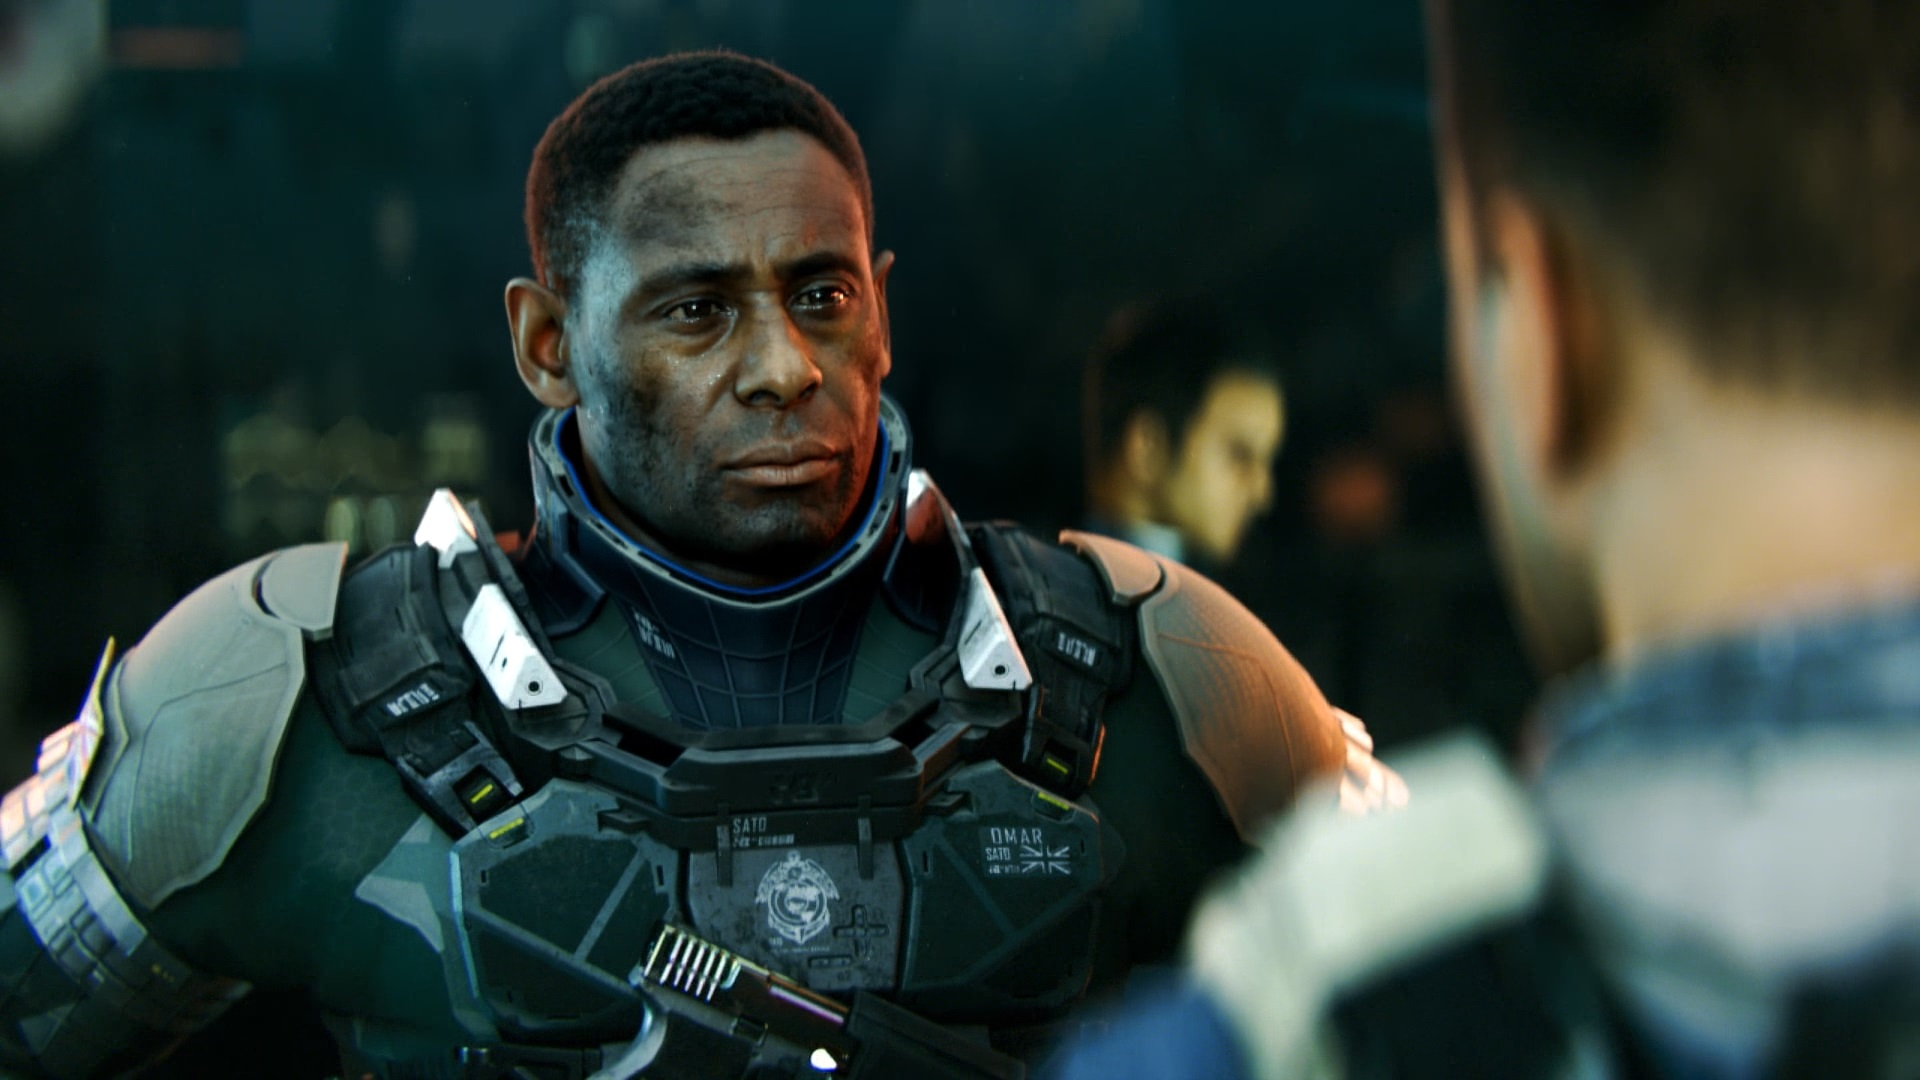 cod-iw-likeable-characters